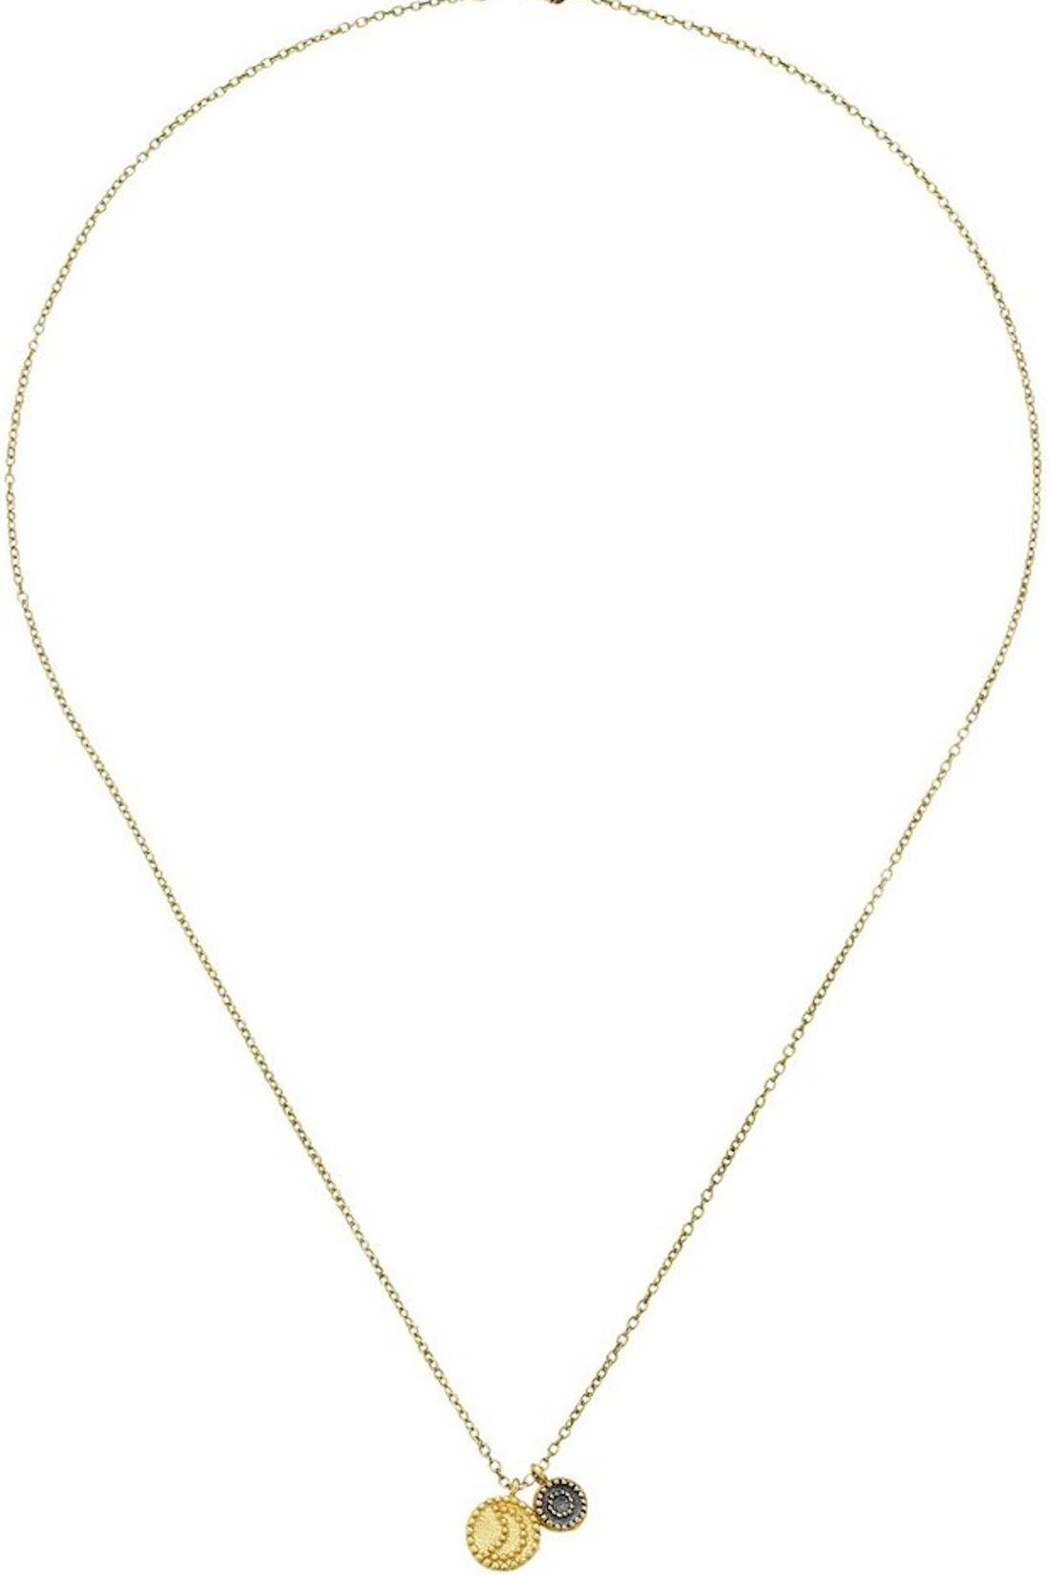 il fullxfull necklace products grande celestial